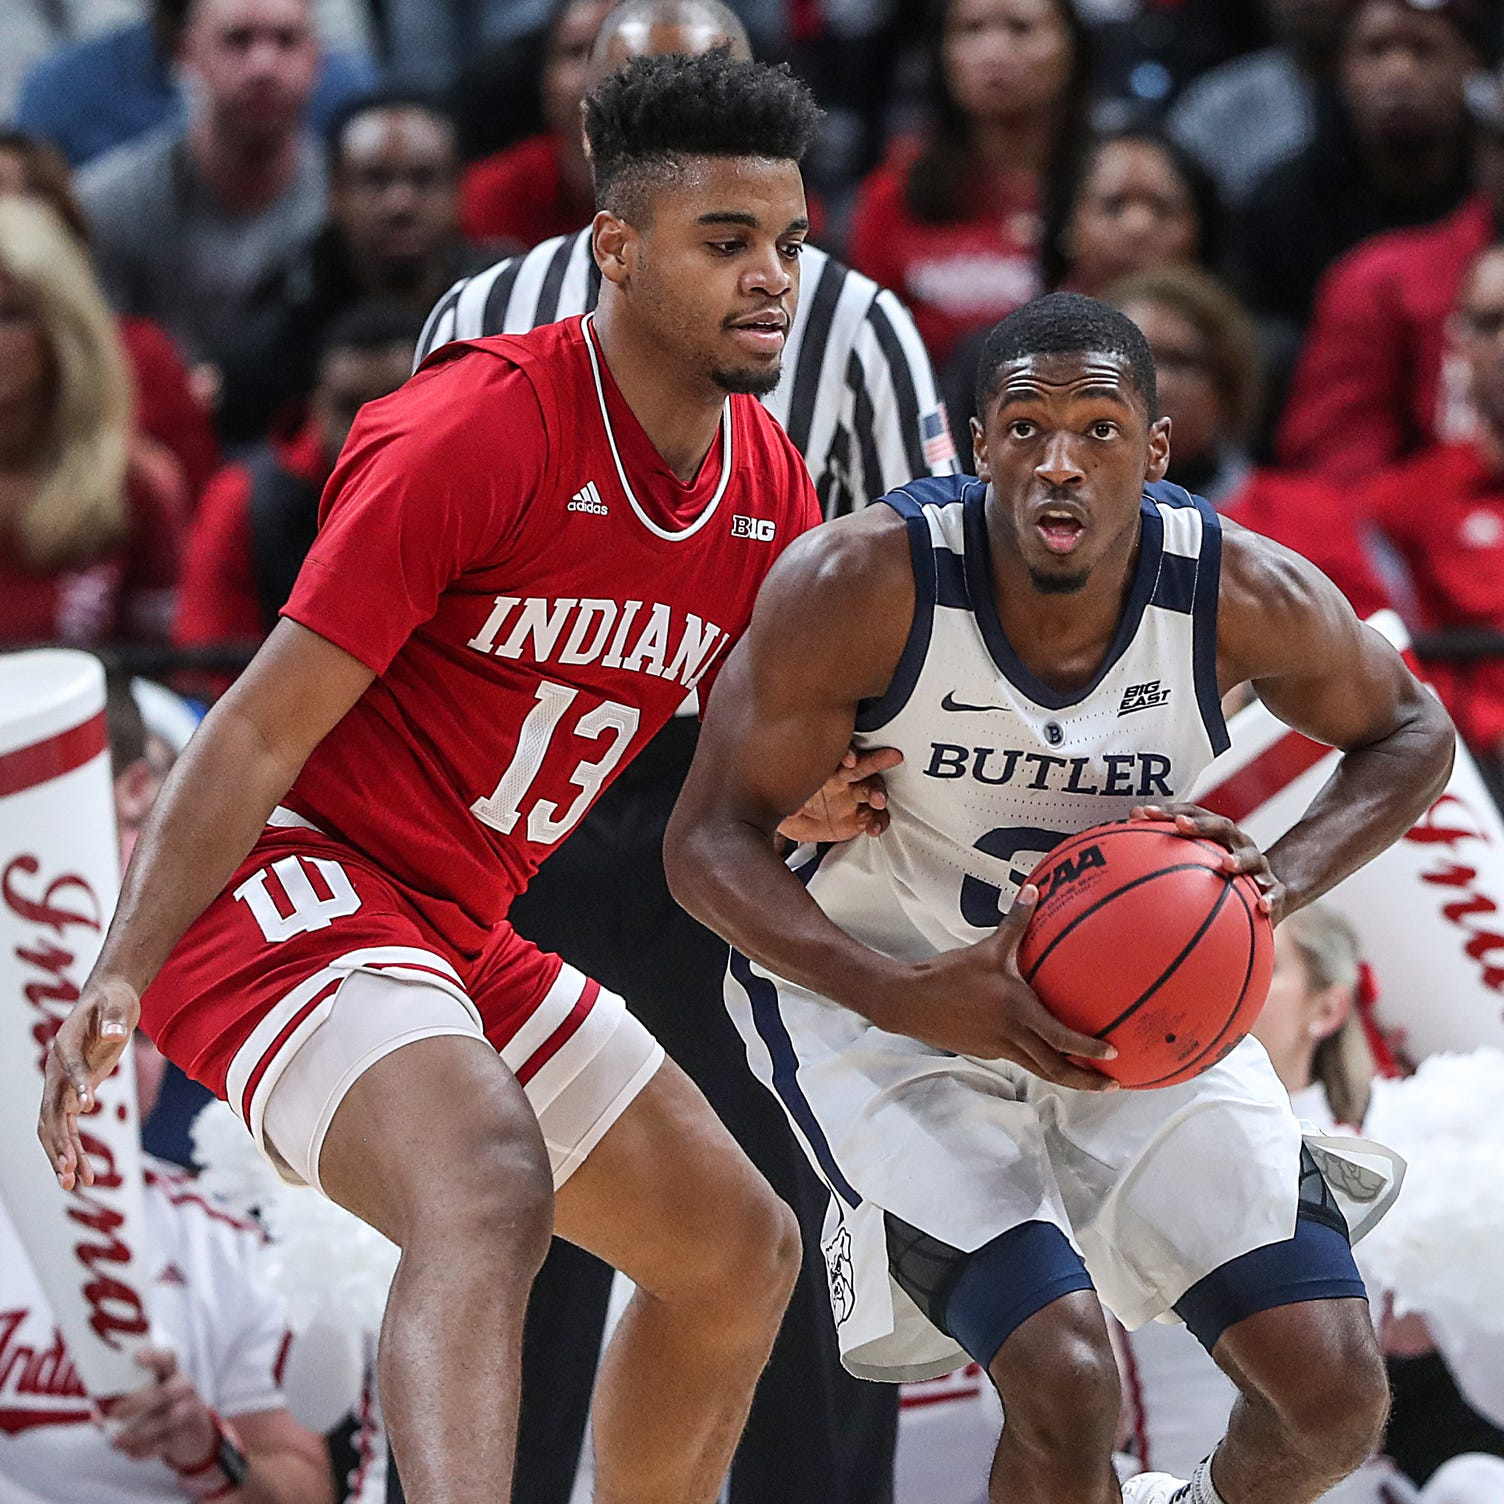 Buzzer breakdown: Butler falls to No. 25 IU on last-second shot